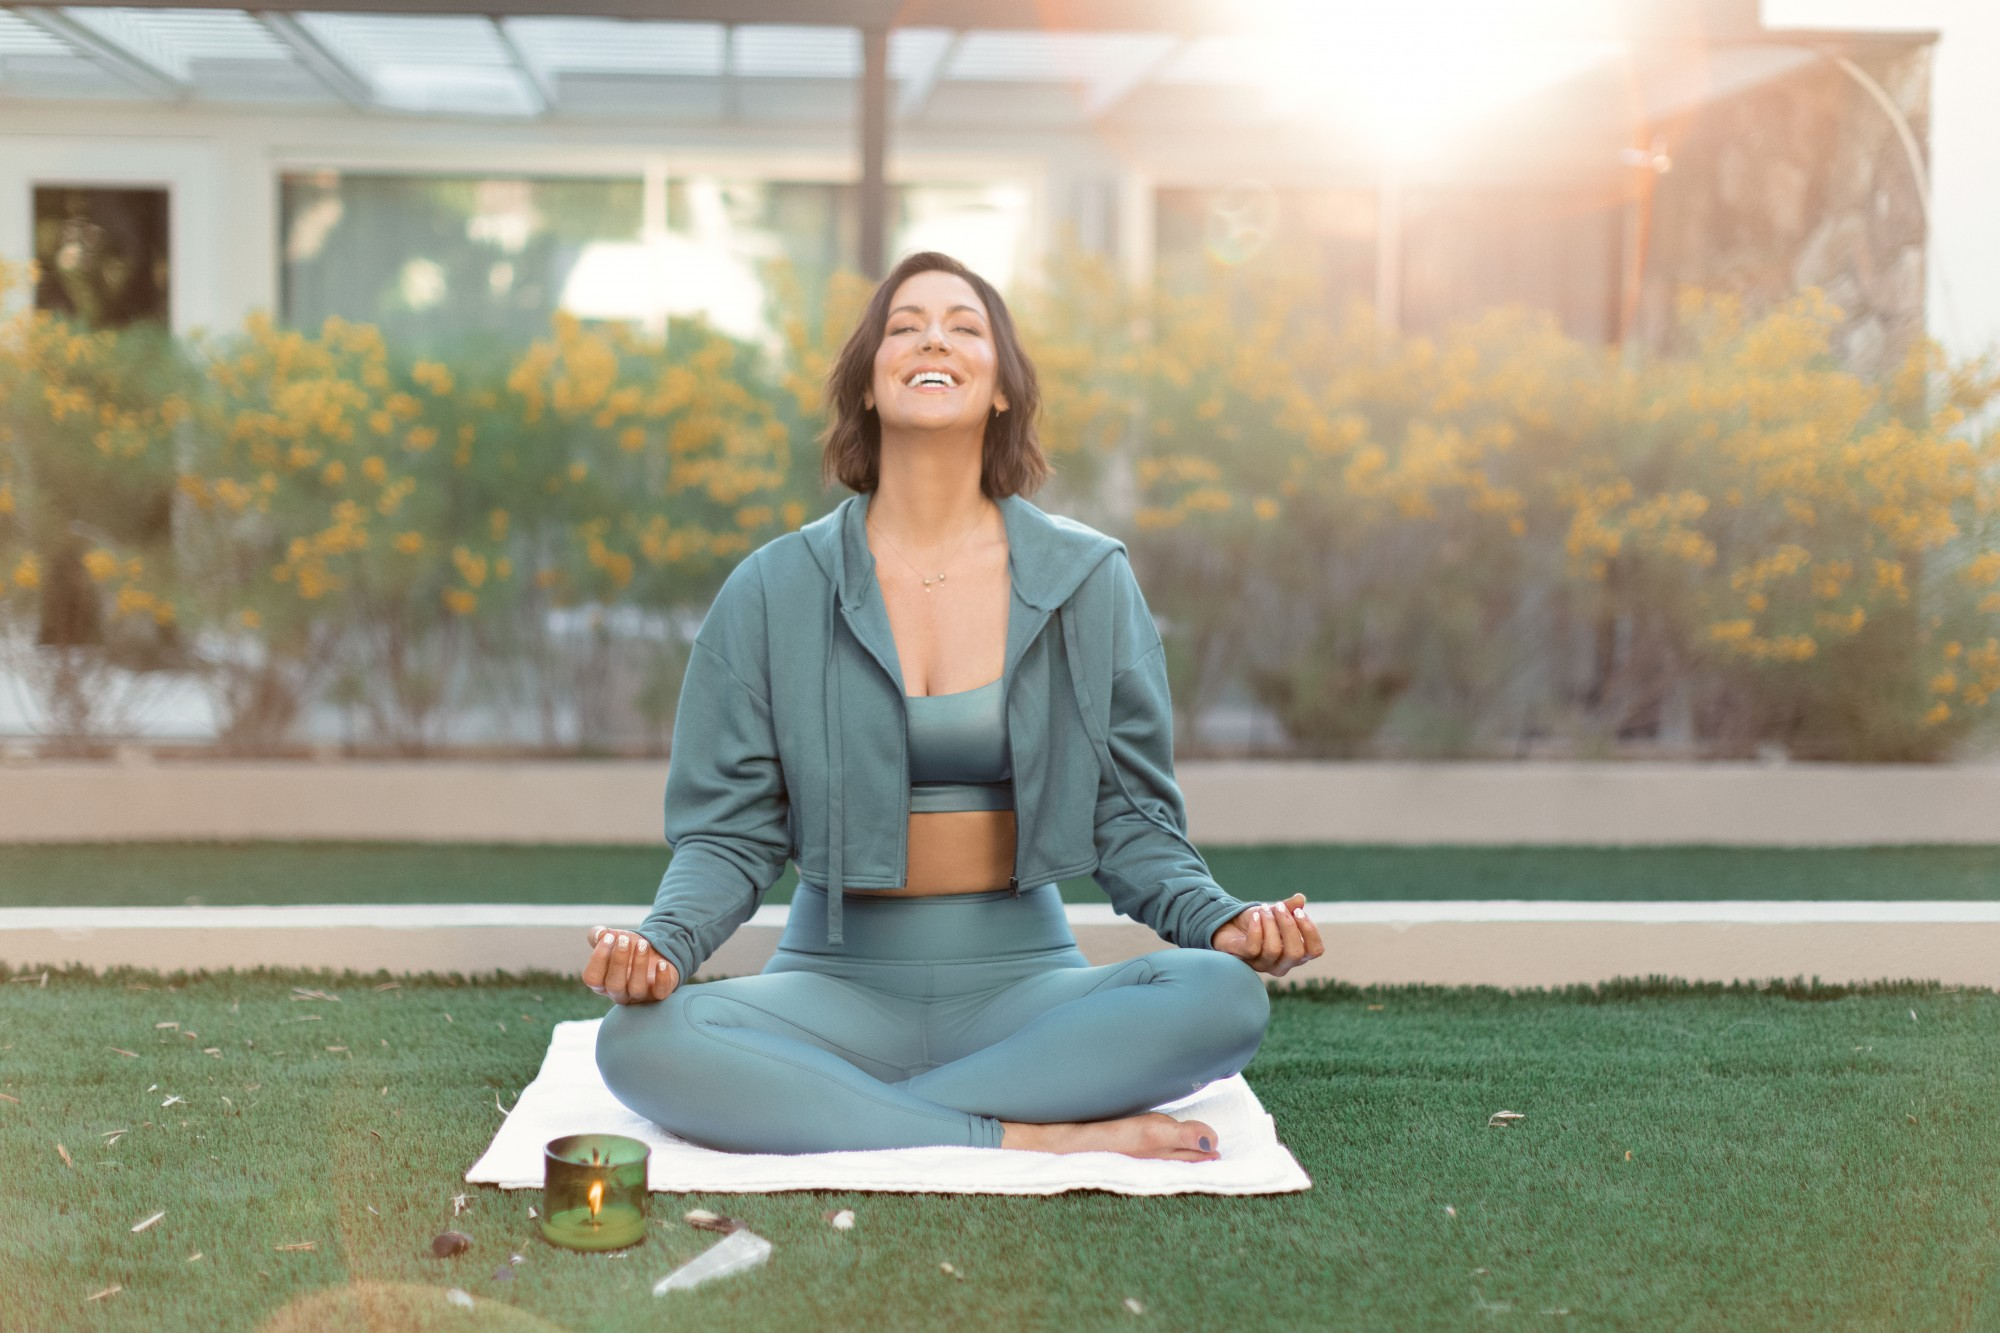 This morning mood booster guided meditation will make you feel happy, peaceful, and release stress.